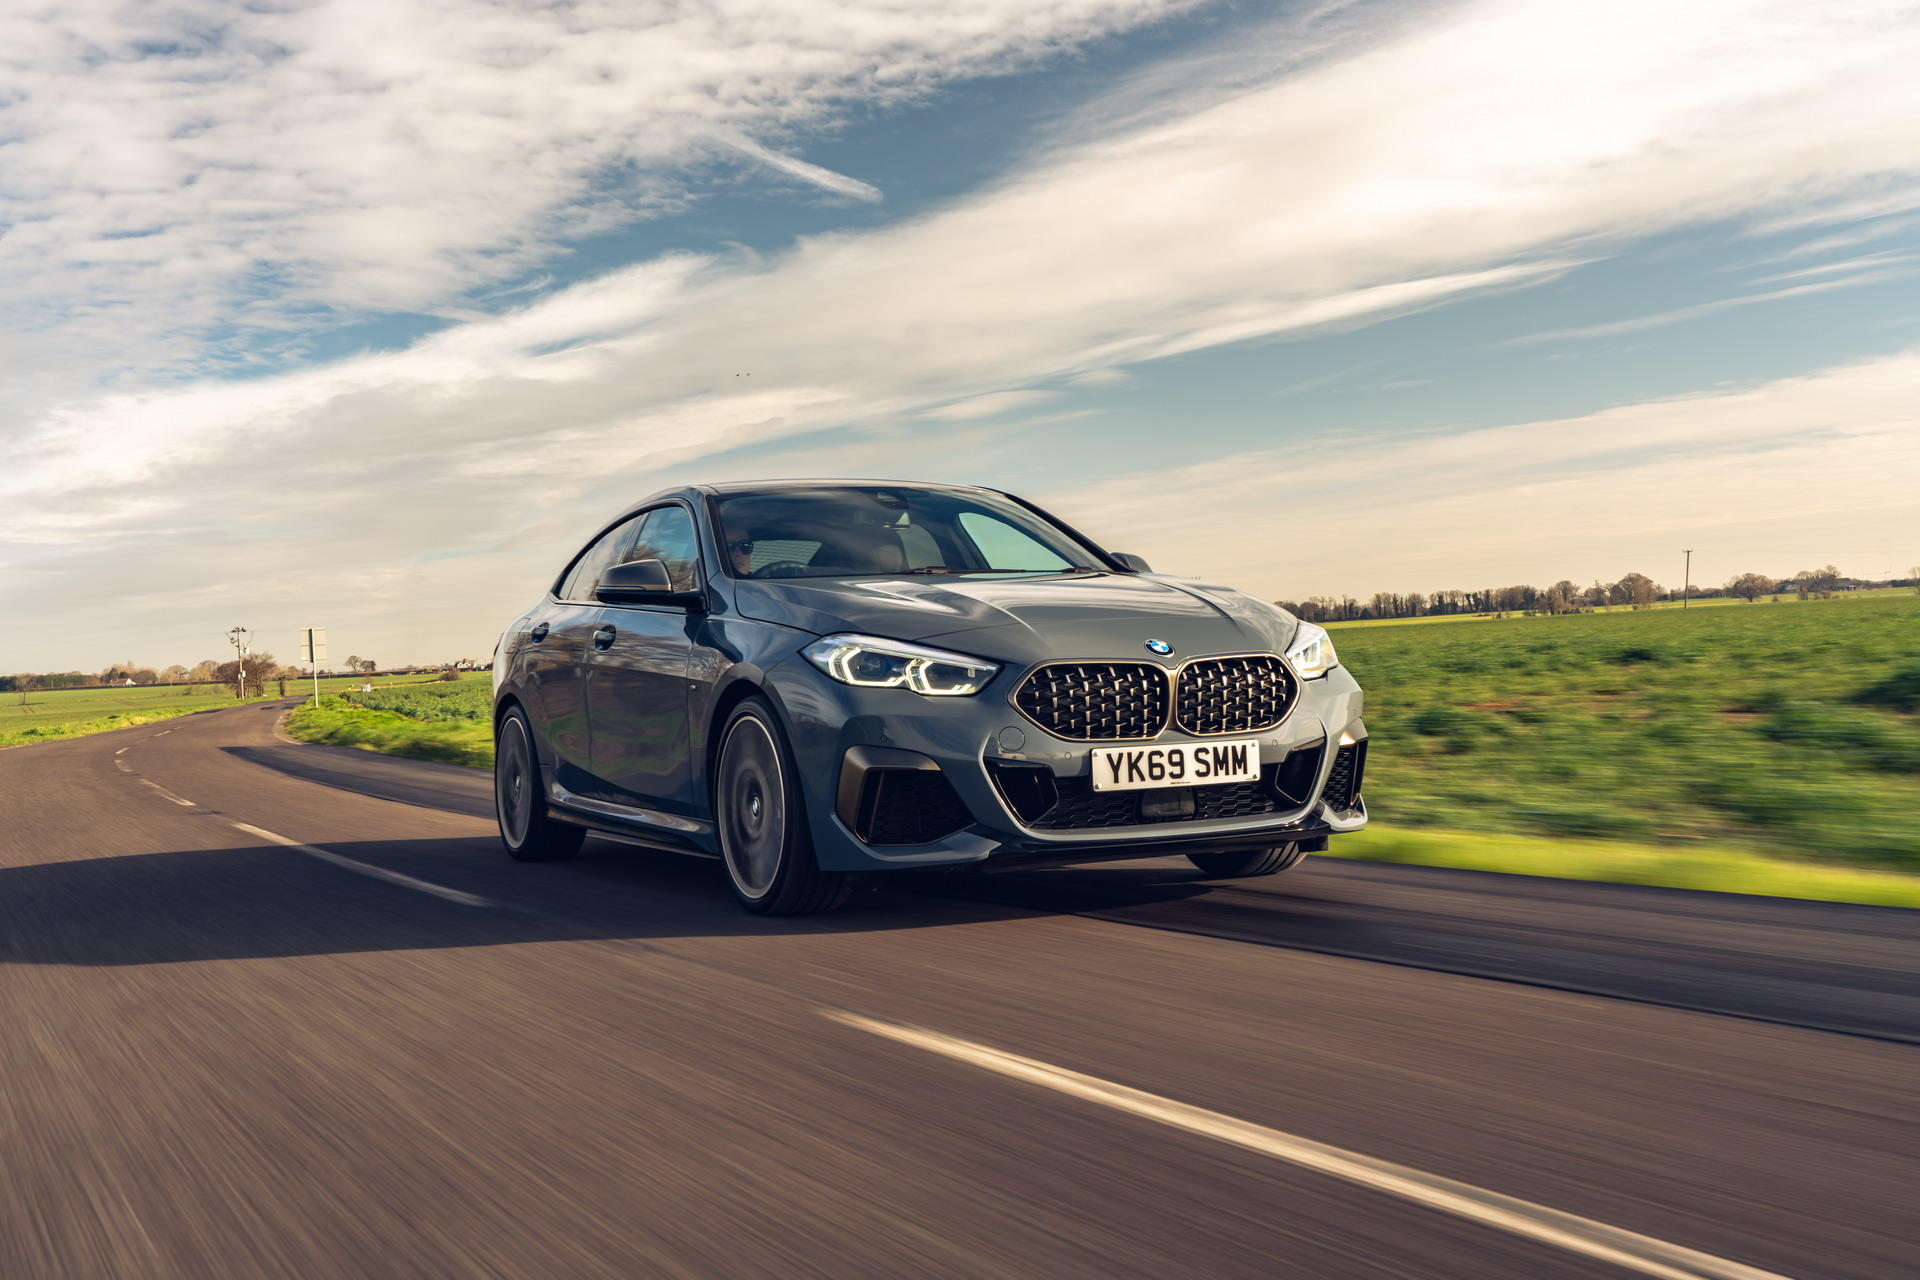 The new BMW M235i xDrive Gran Coupe F44 UK 43